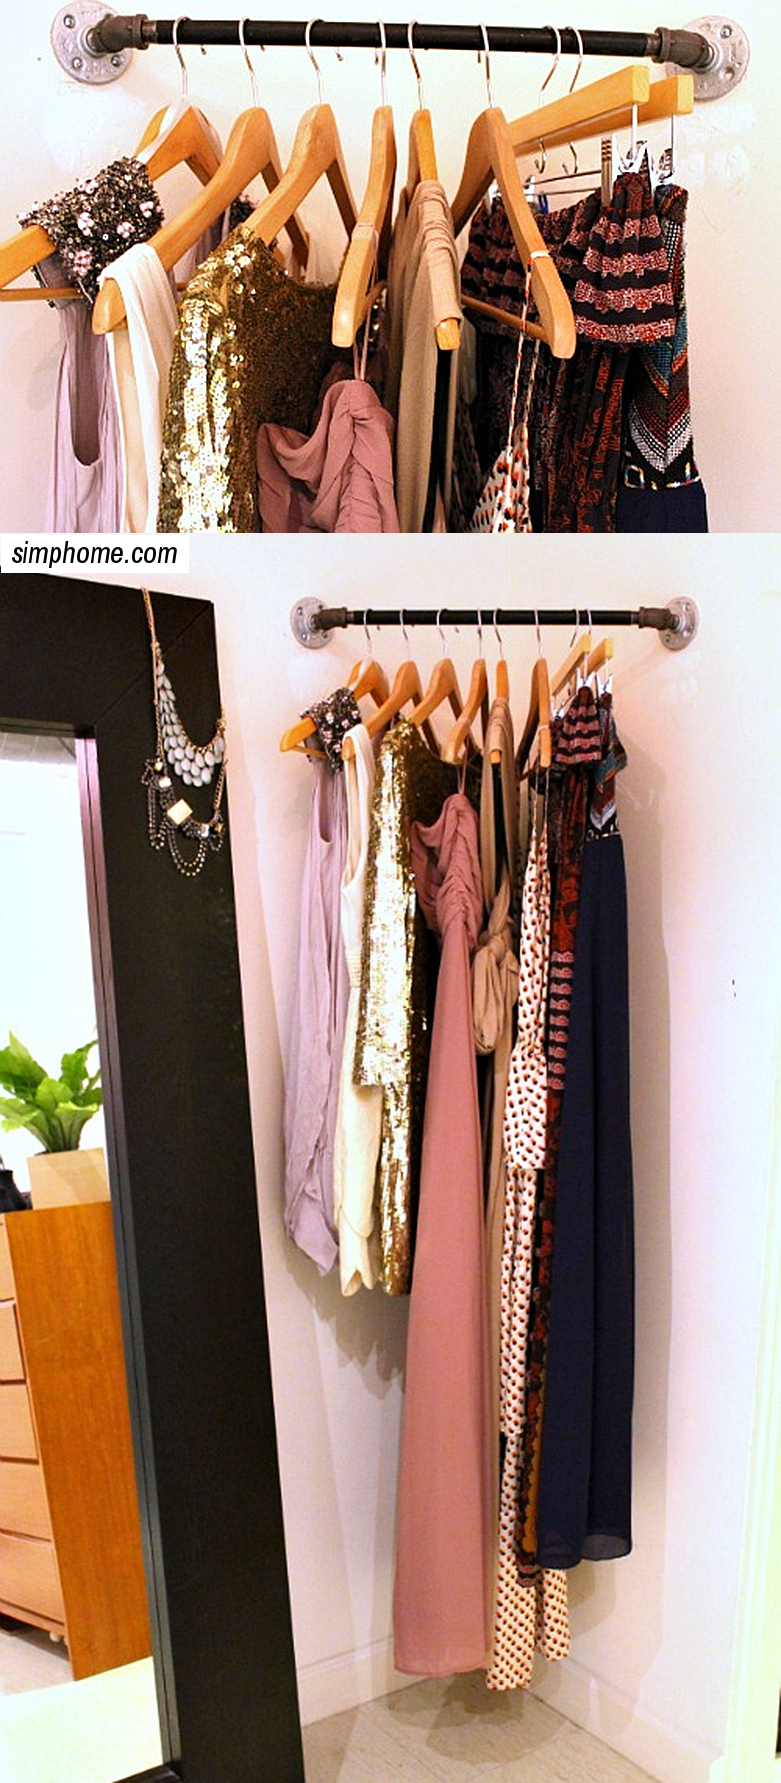 DIY Industrial dress bar via simphome 3